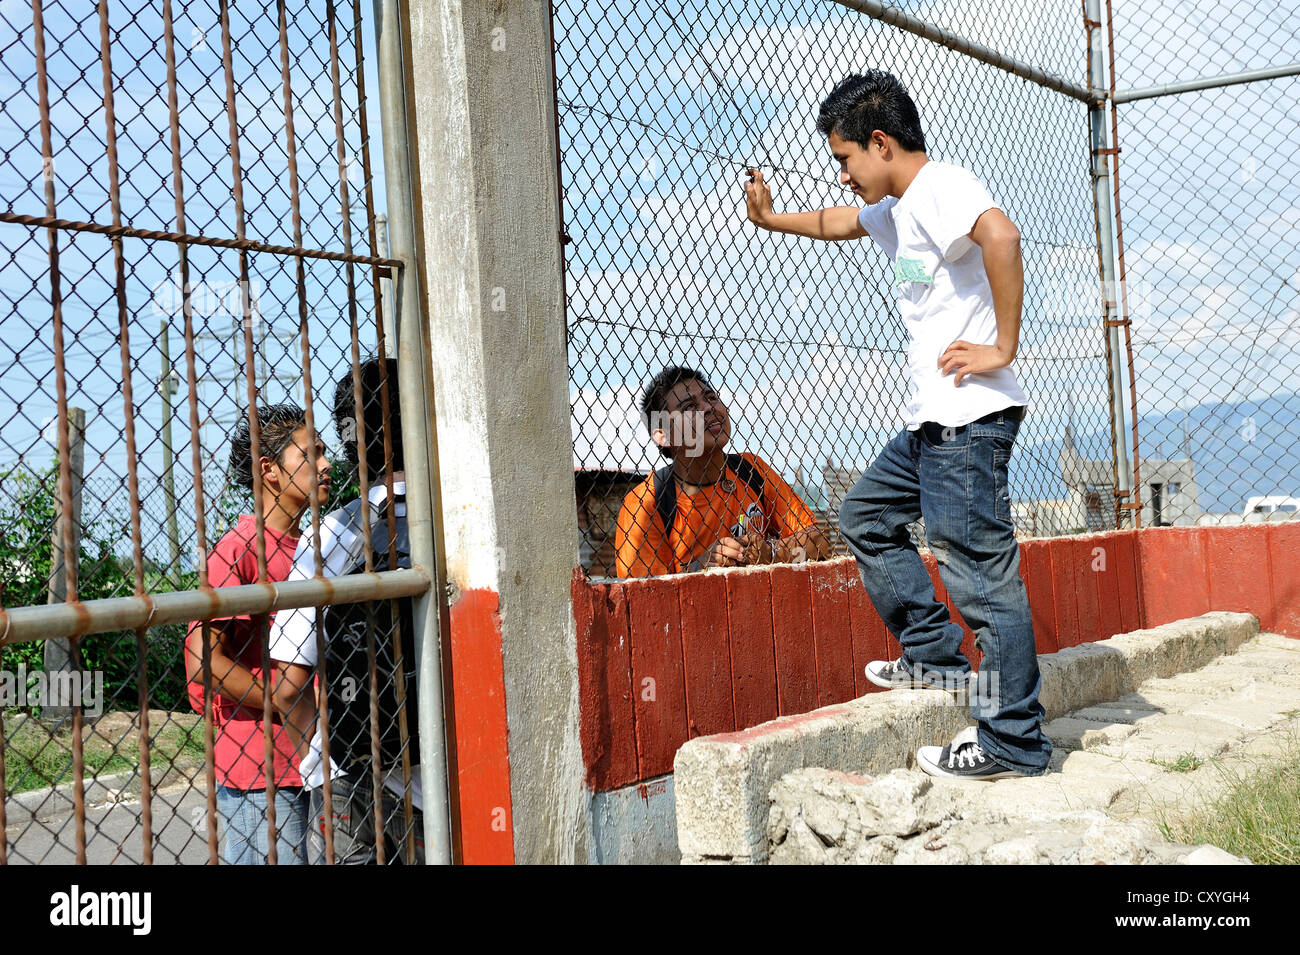 Teenager, 16 years old, talking to his friends on the street through a chain link fence, Escuela Ceiba school - Stock Image